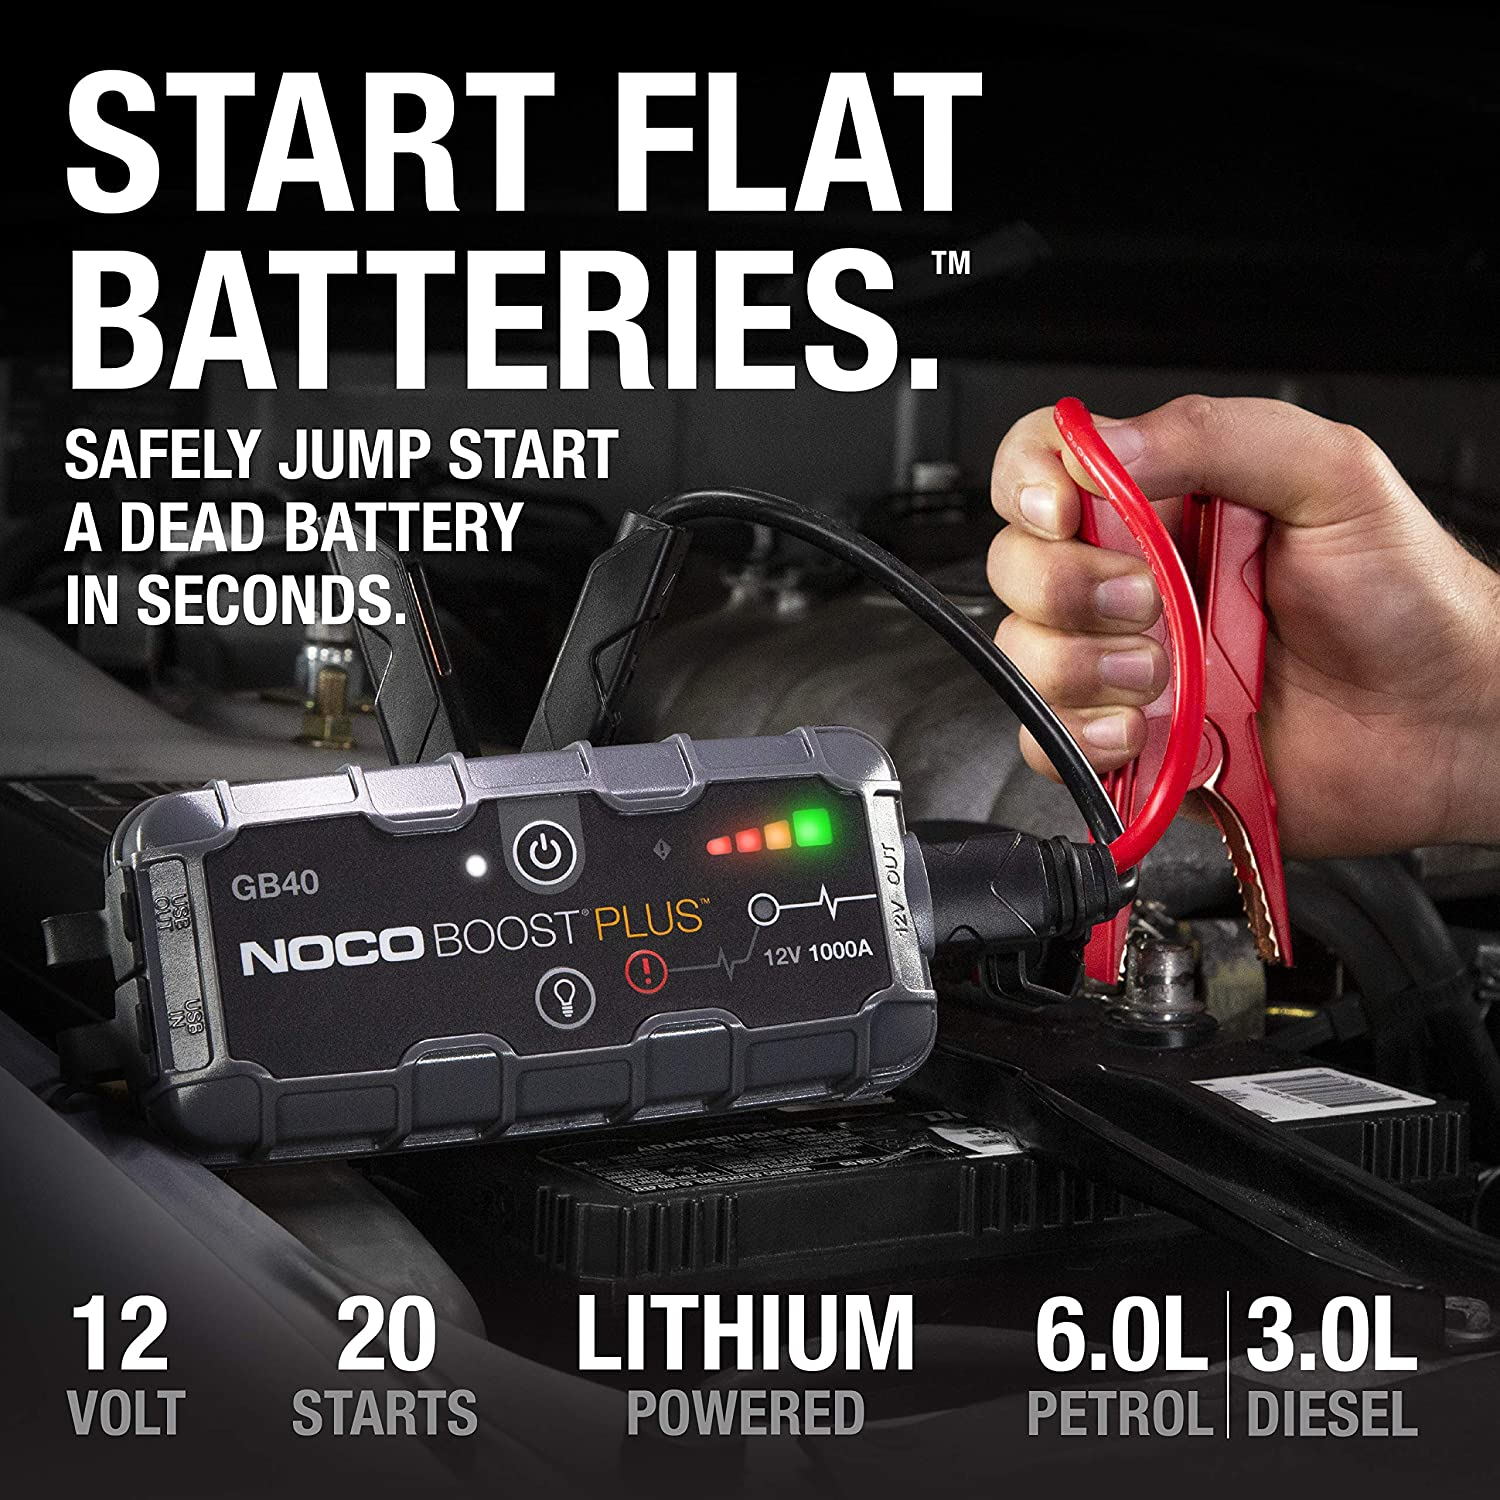 NOCO Boost Plus GB40 1000 Amp 12-Volt Ultra Safe Portable Lithium Car Battery Jump Starter Pack - Specification